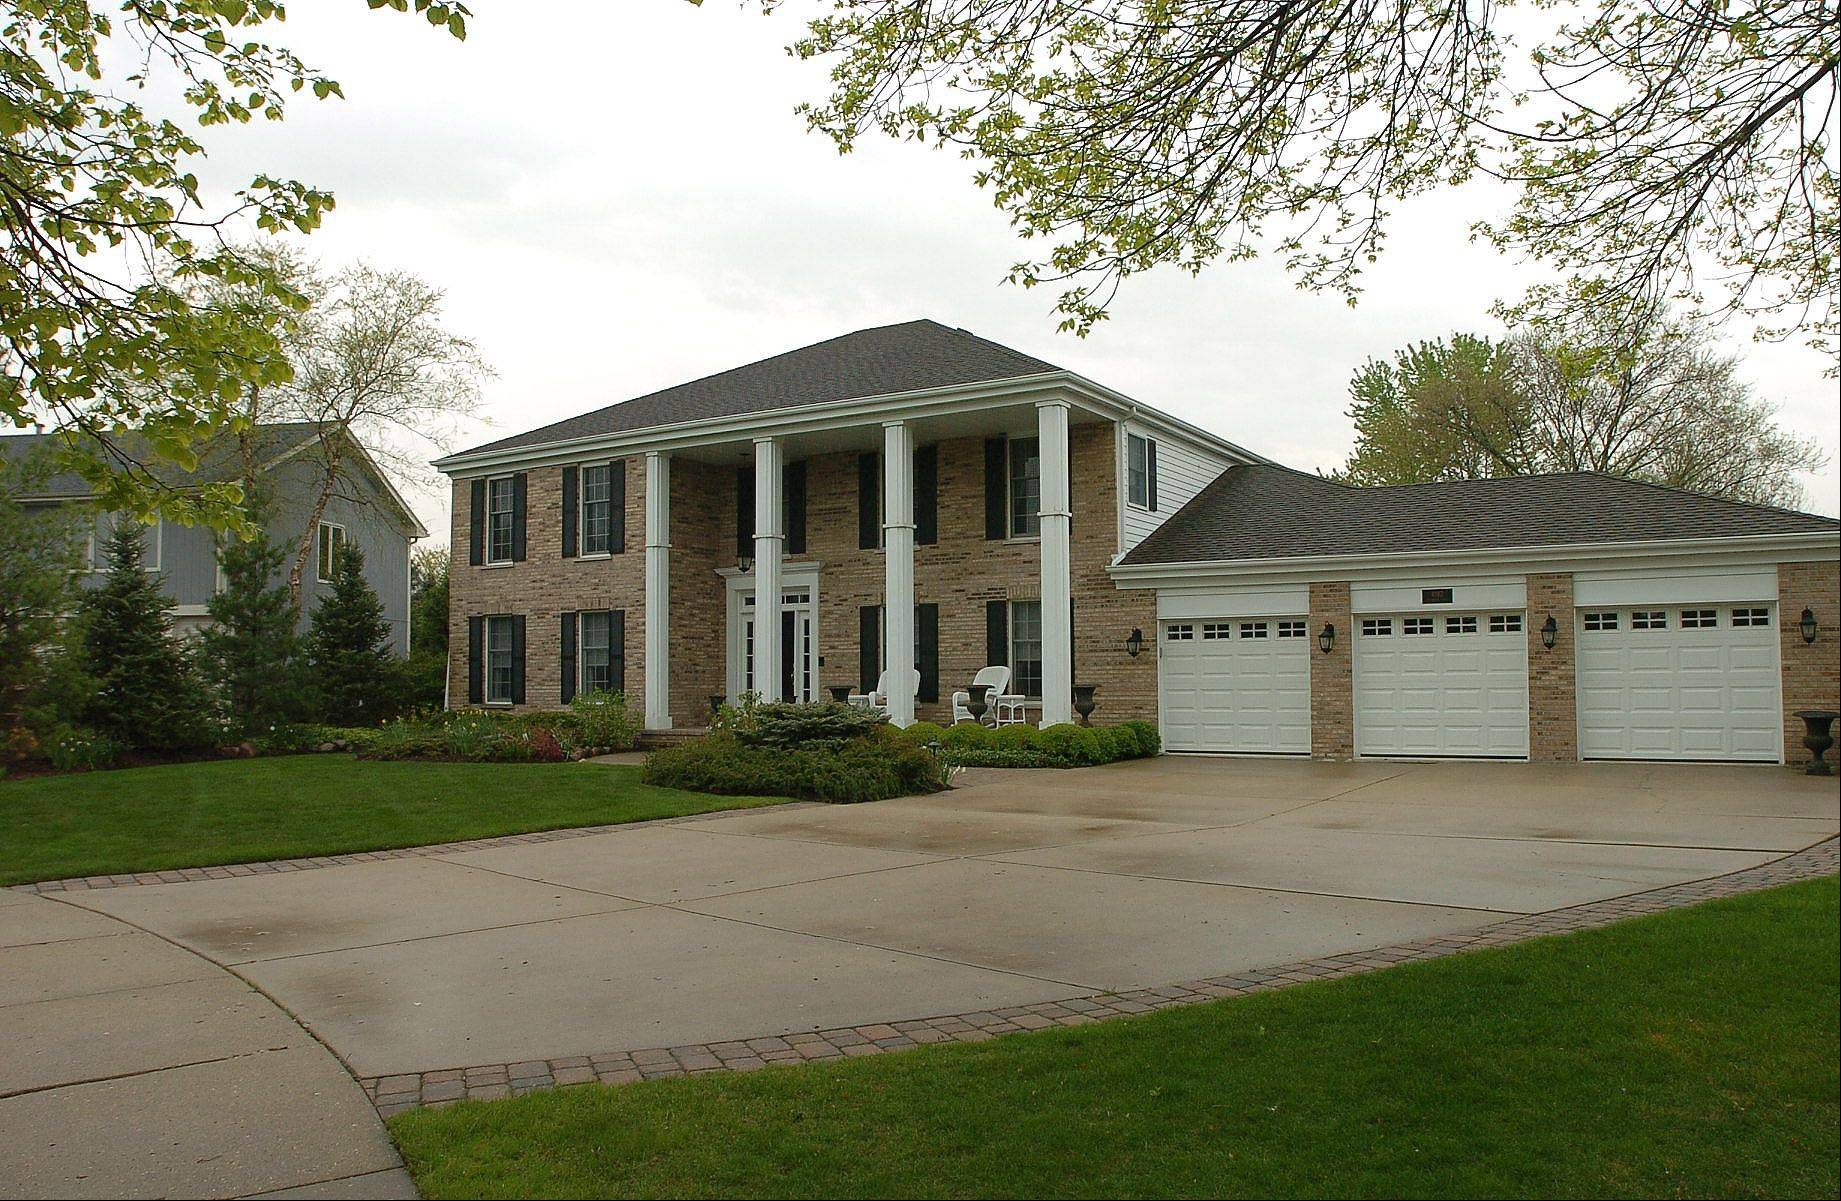 The Evergreen neighborhood in Hoffman Estates was built by Kennedy Builders about 24 years ago.